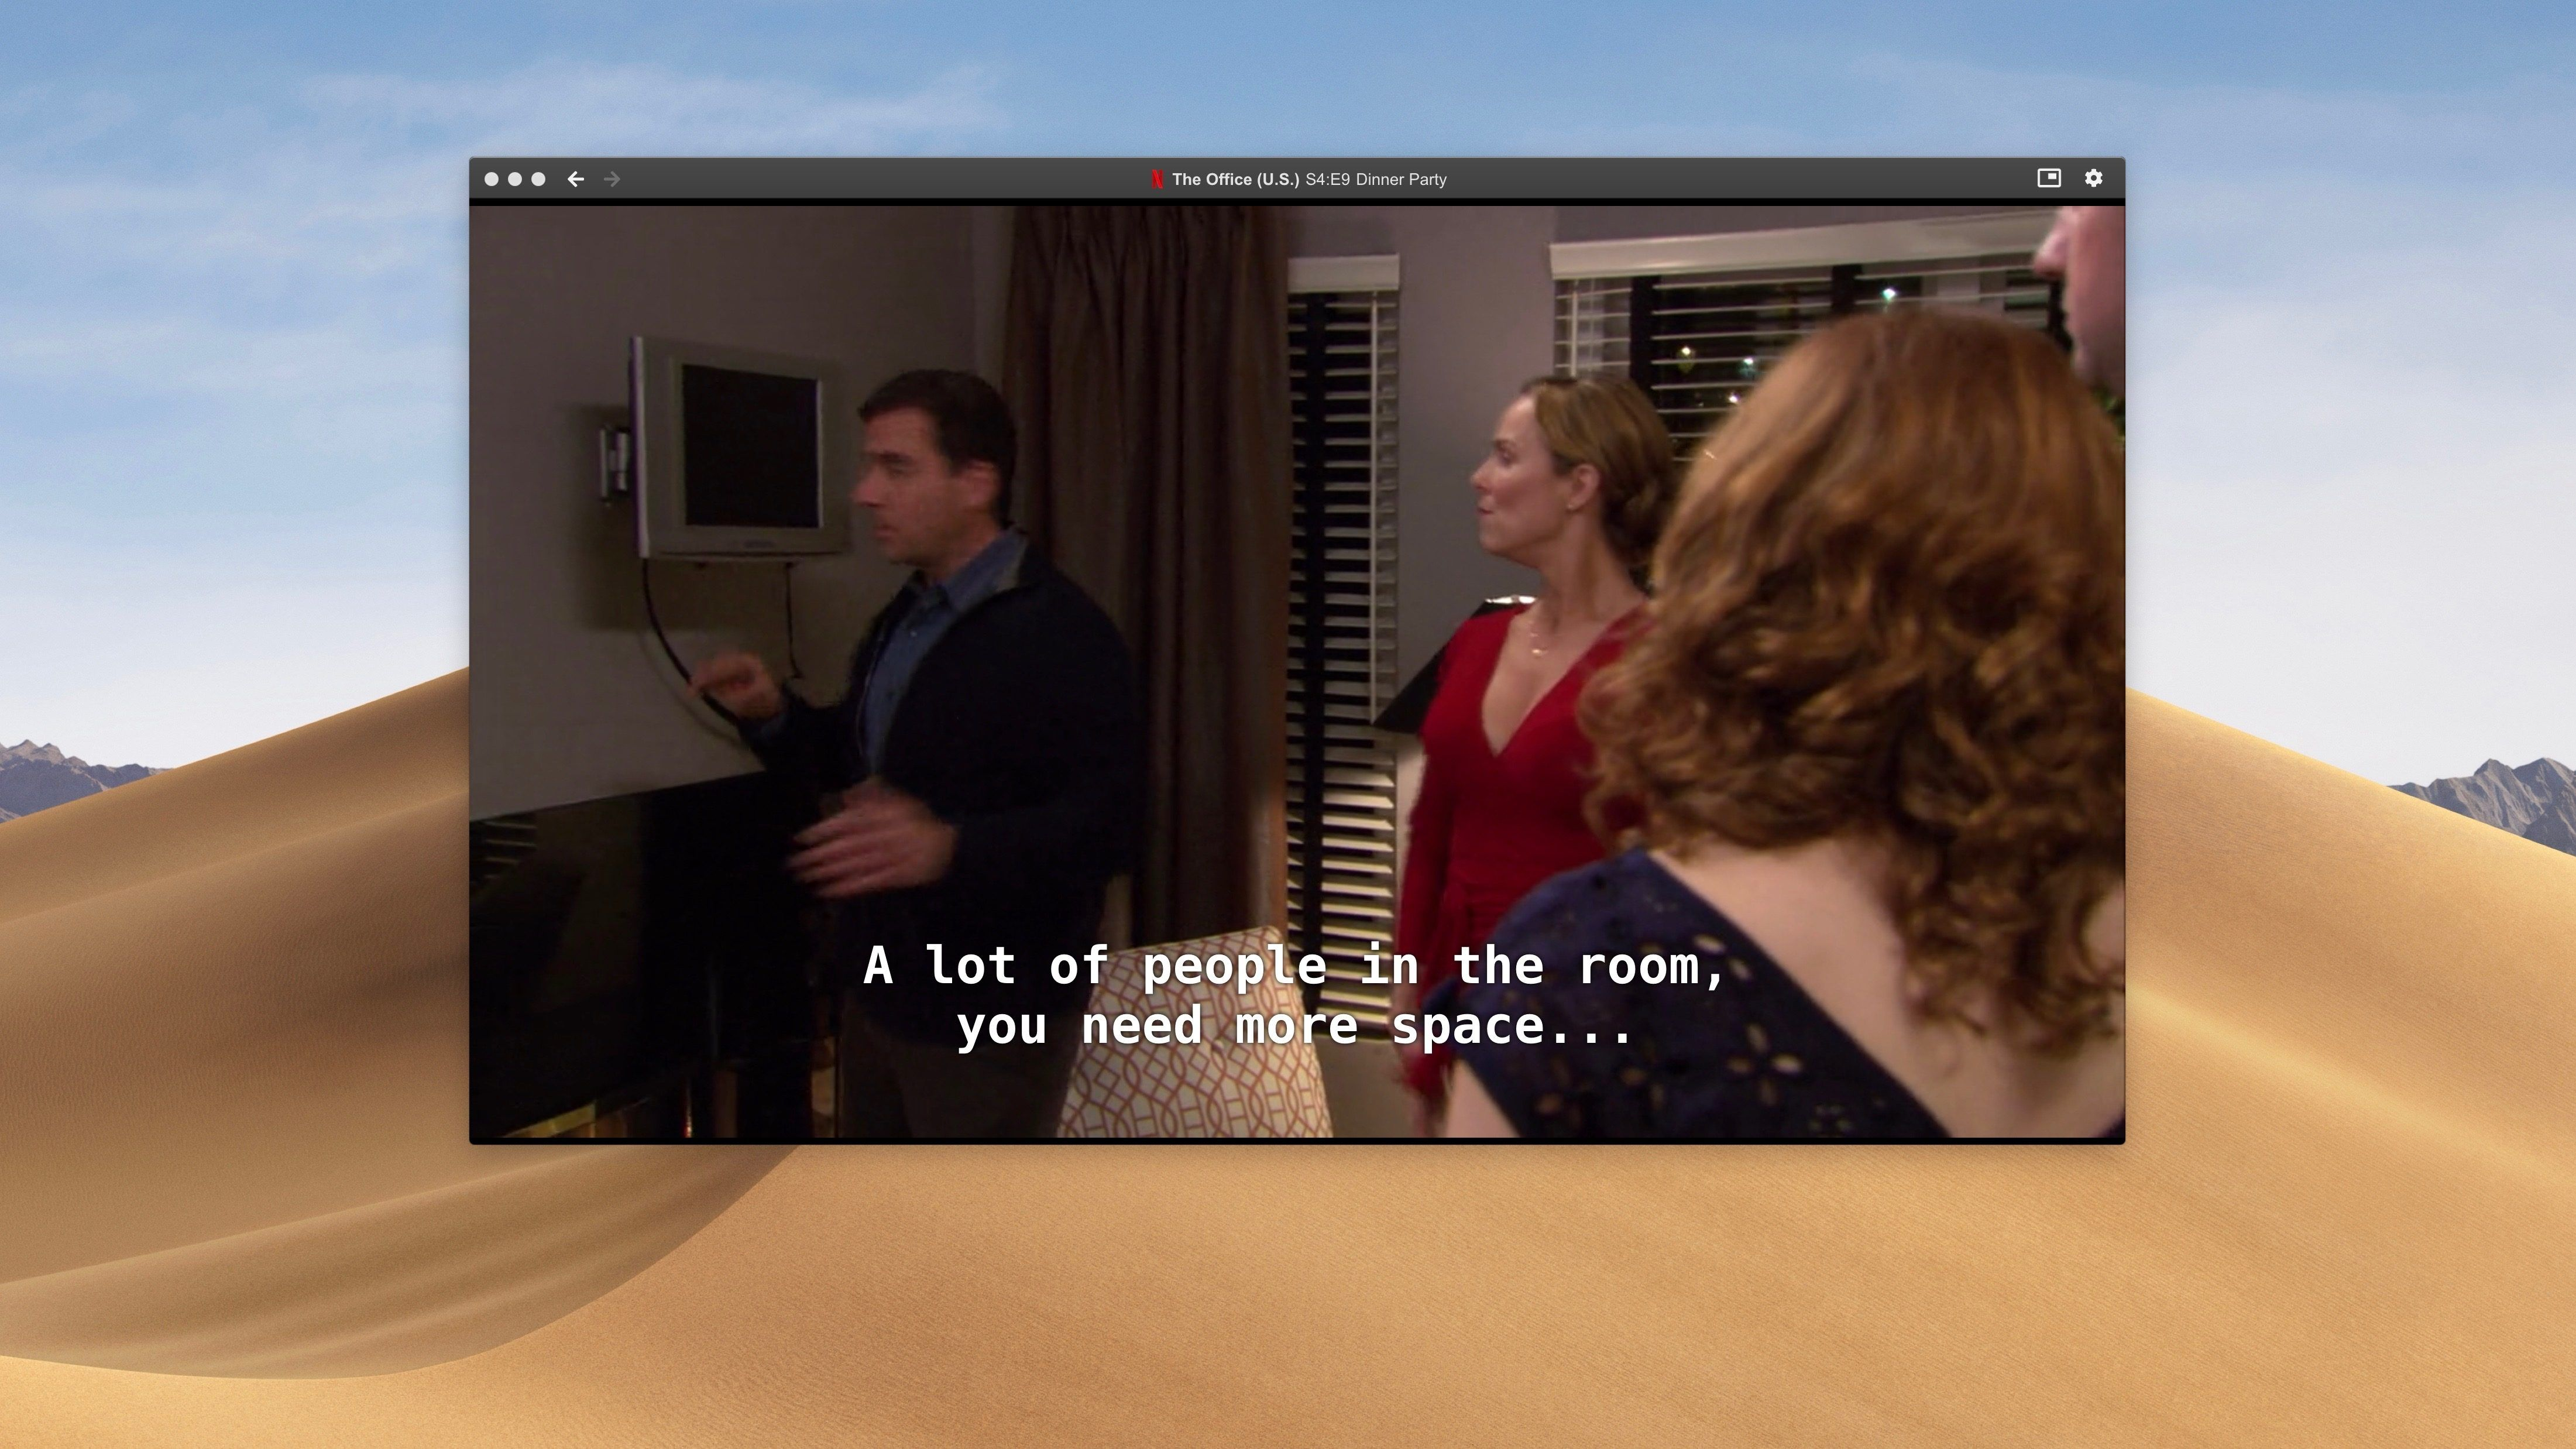 'Clicker' is a unique Netflix app for Mac with Touch Bar